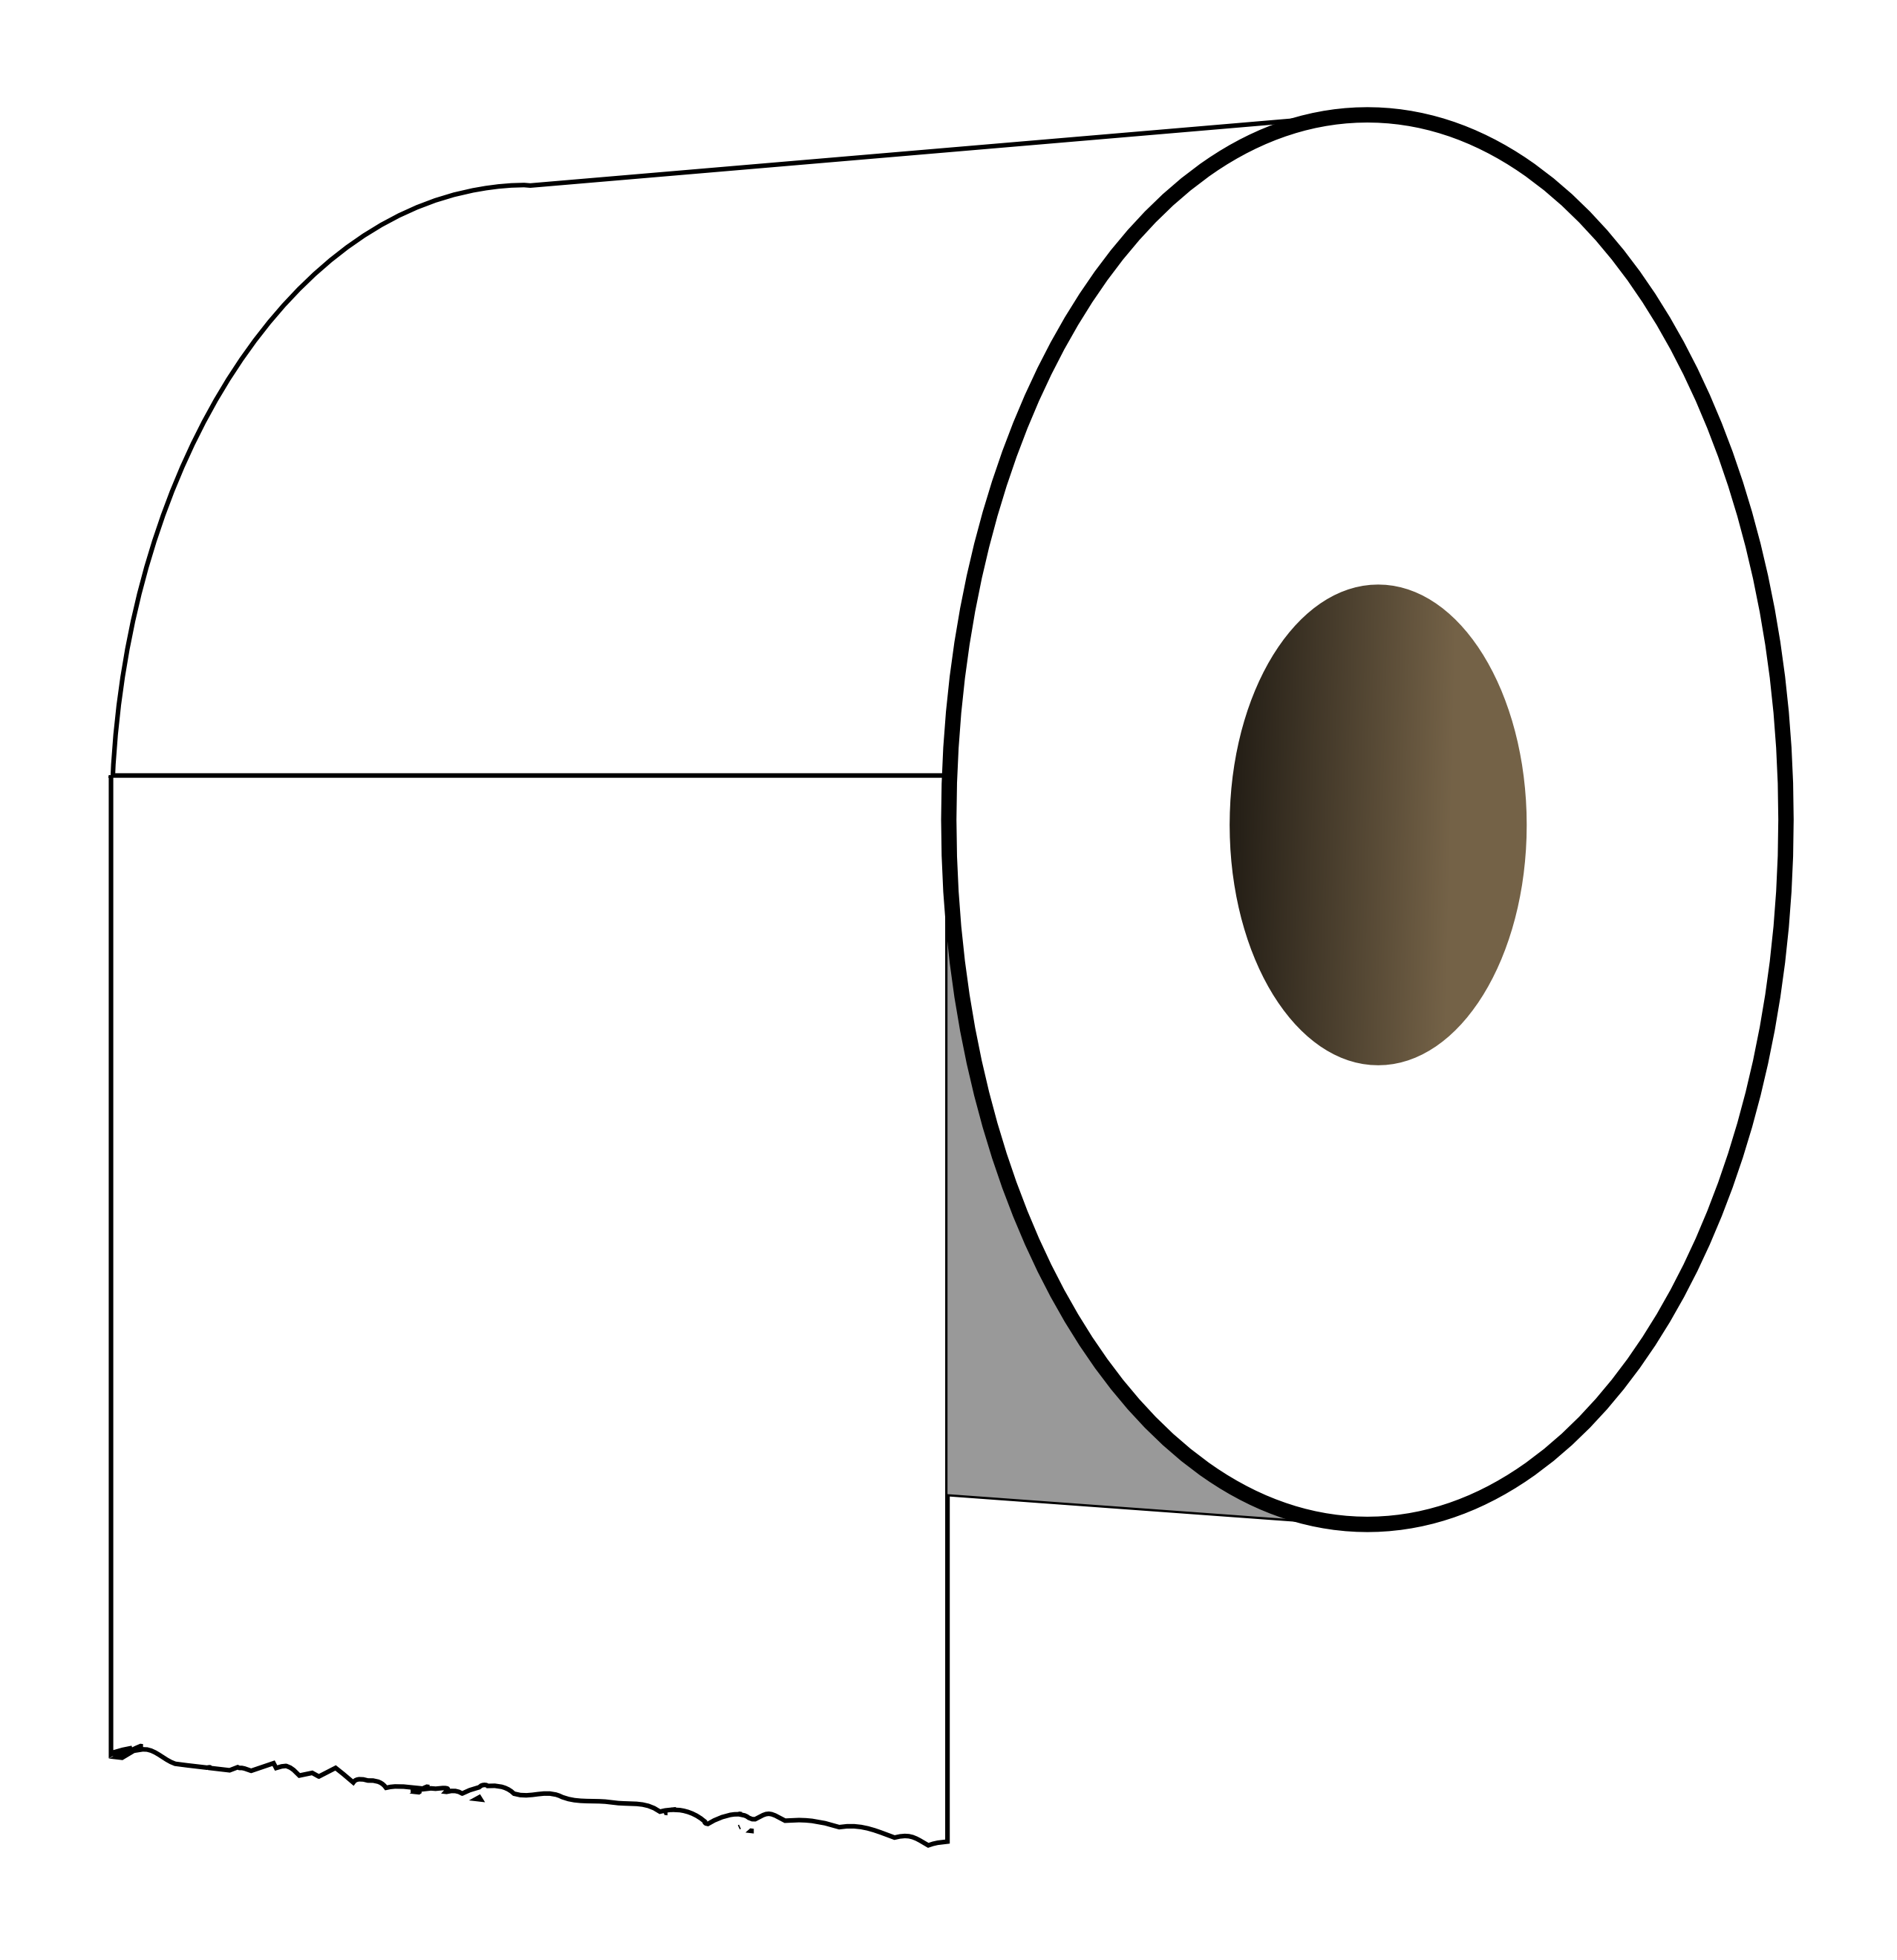 Clip Art Toilet Paper Clip Art toilet paper clipart kid 15 free cliparts that you can download to you